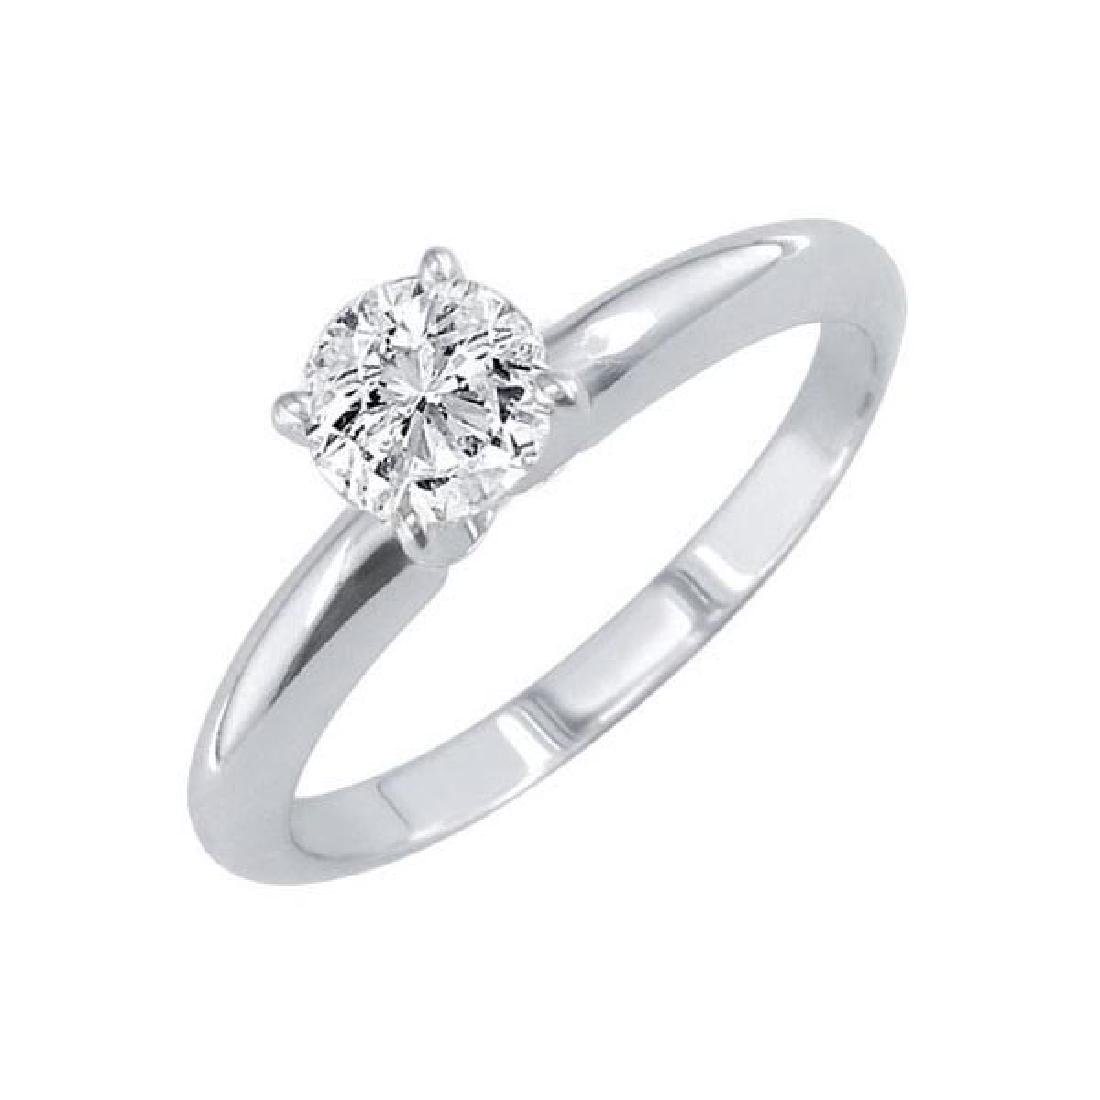 Certified 0.72 CTW Round Diamond Solitaire 14k Ring H/S